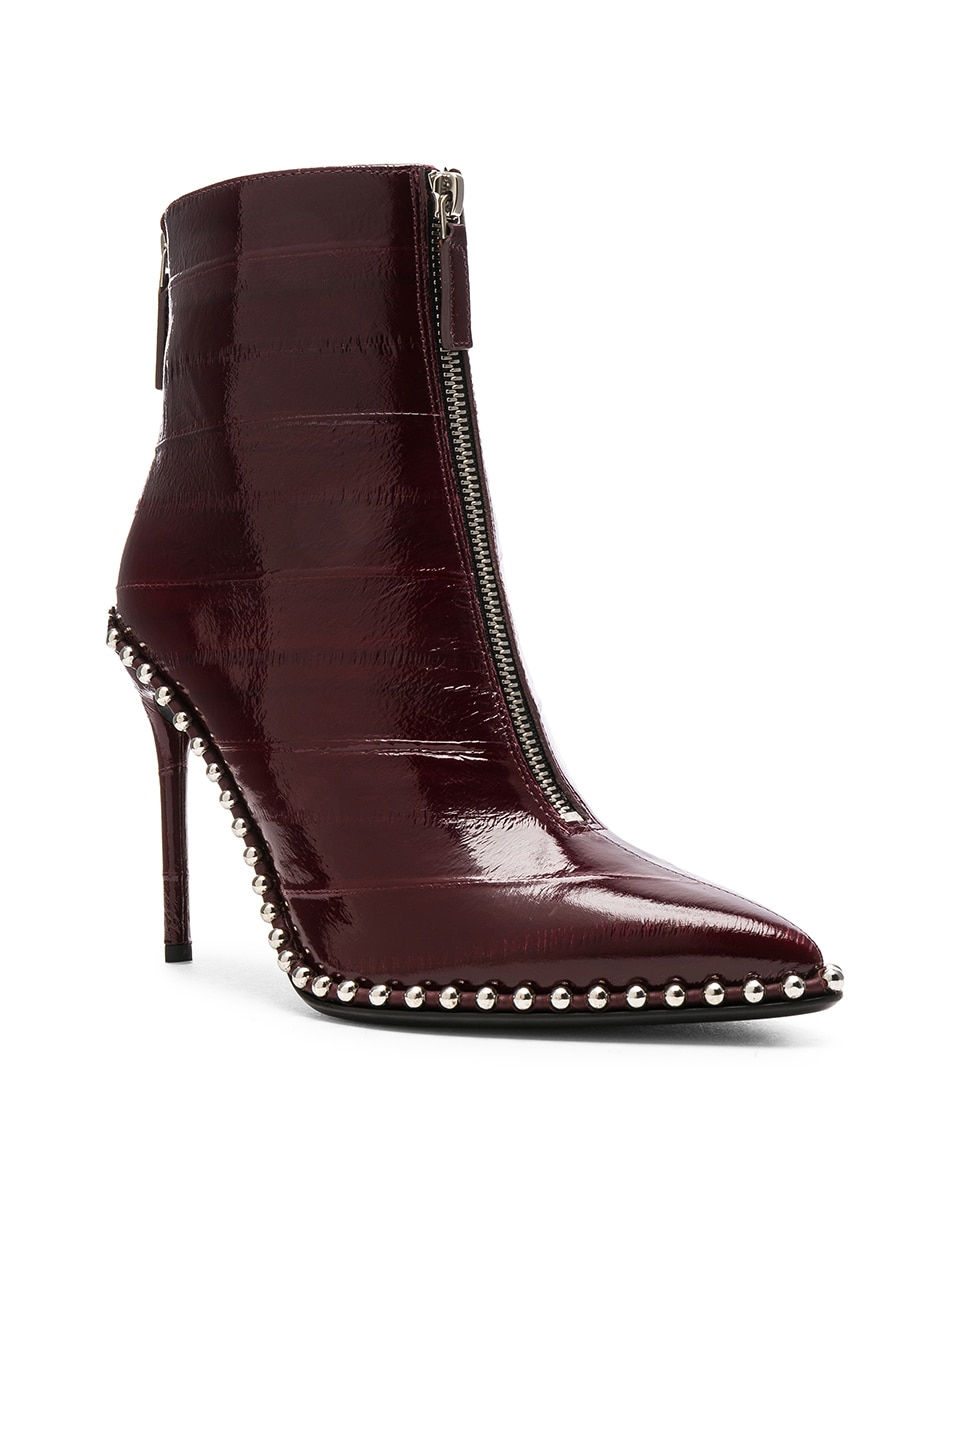 Image 2 of Alexander Wang Eri Patent Boot in Oxblood